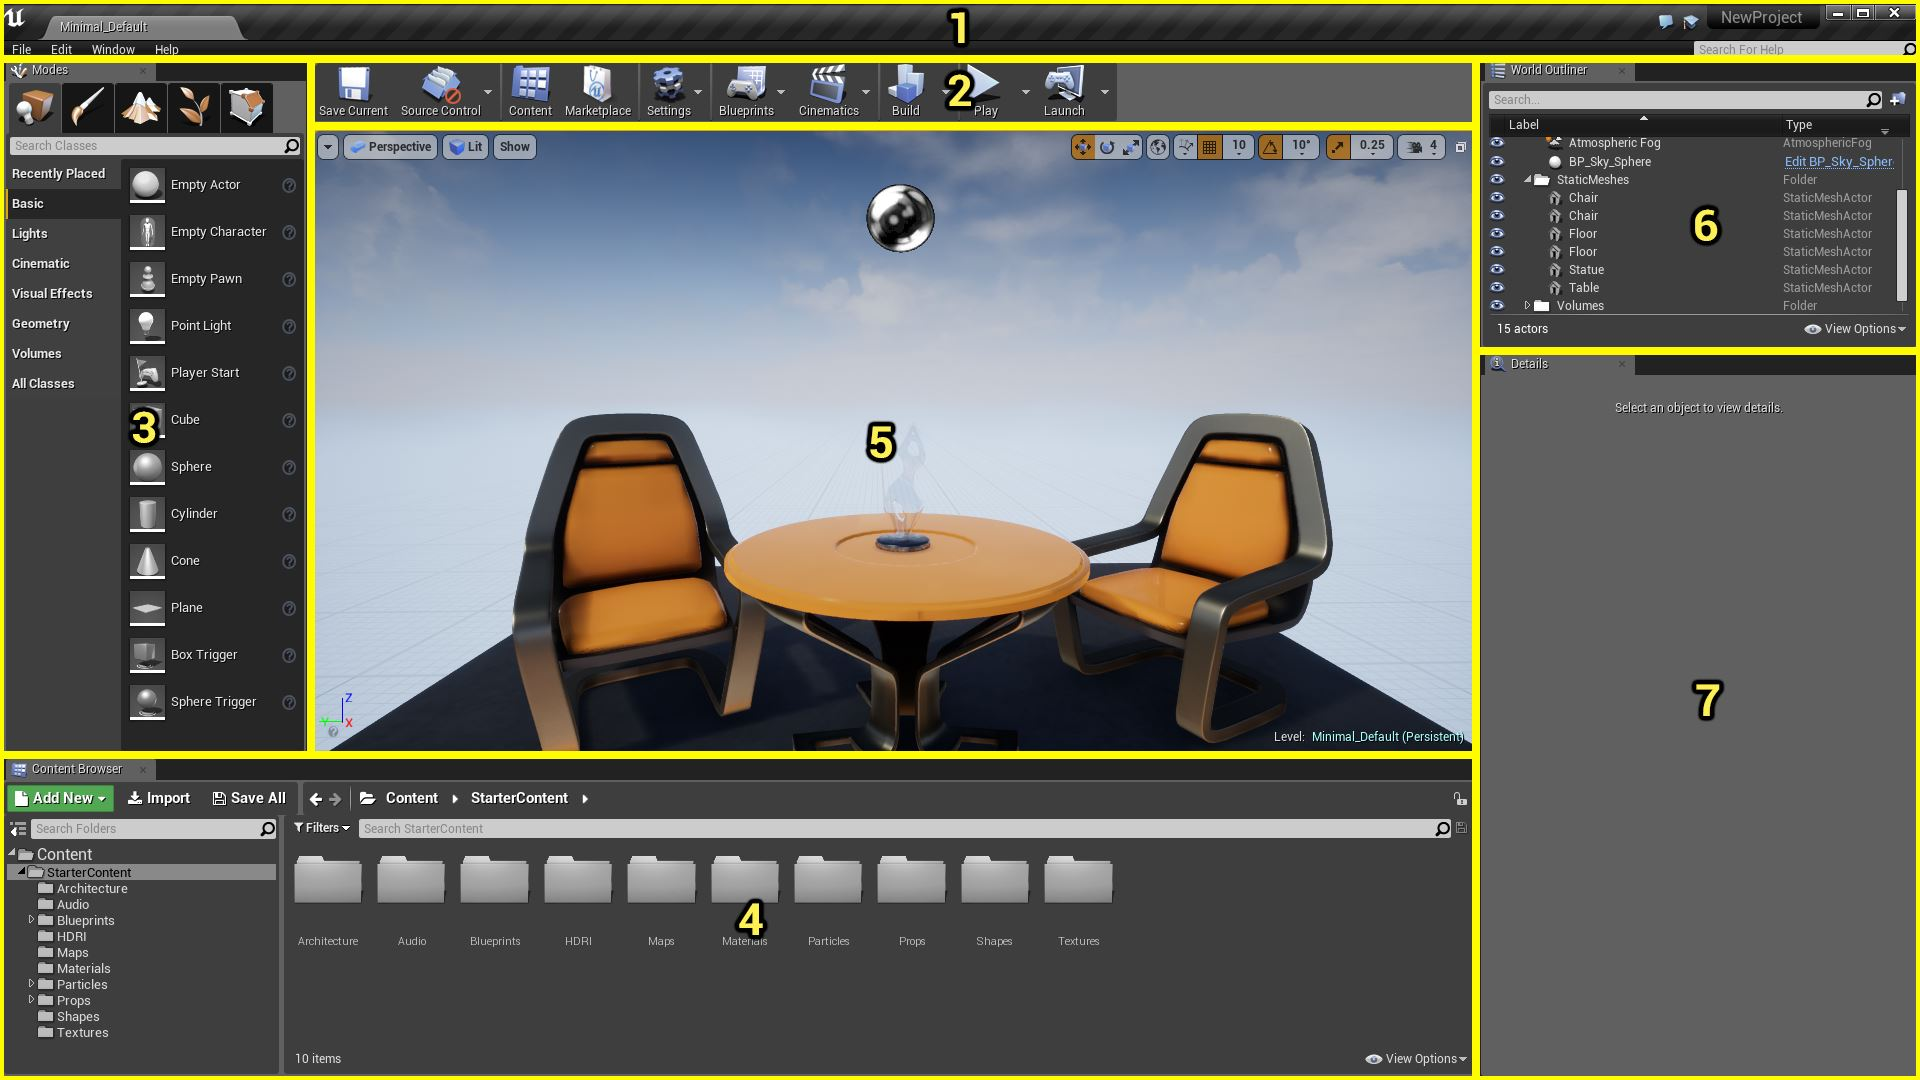 Getting started with Unreal Engine 4 - Skyreal